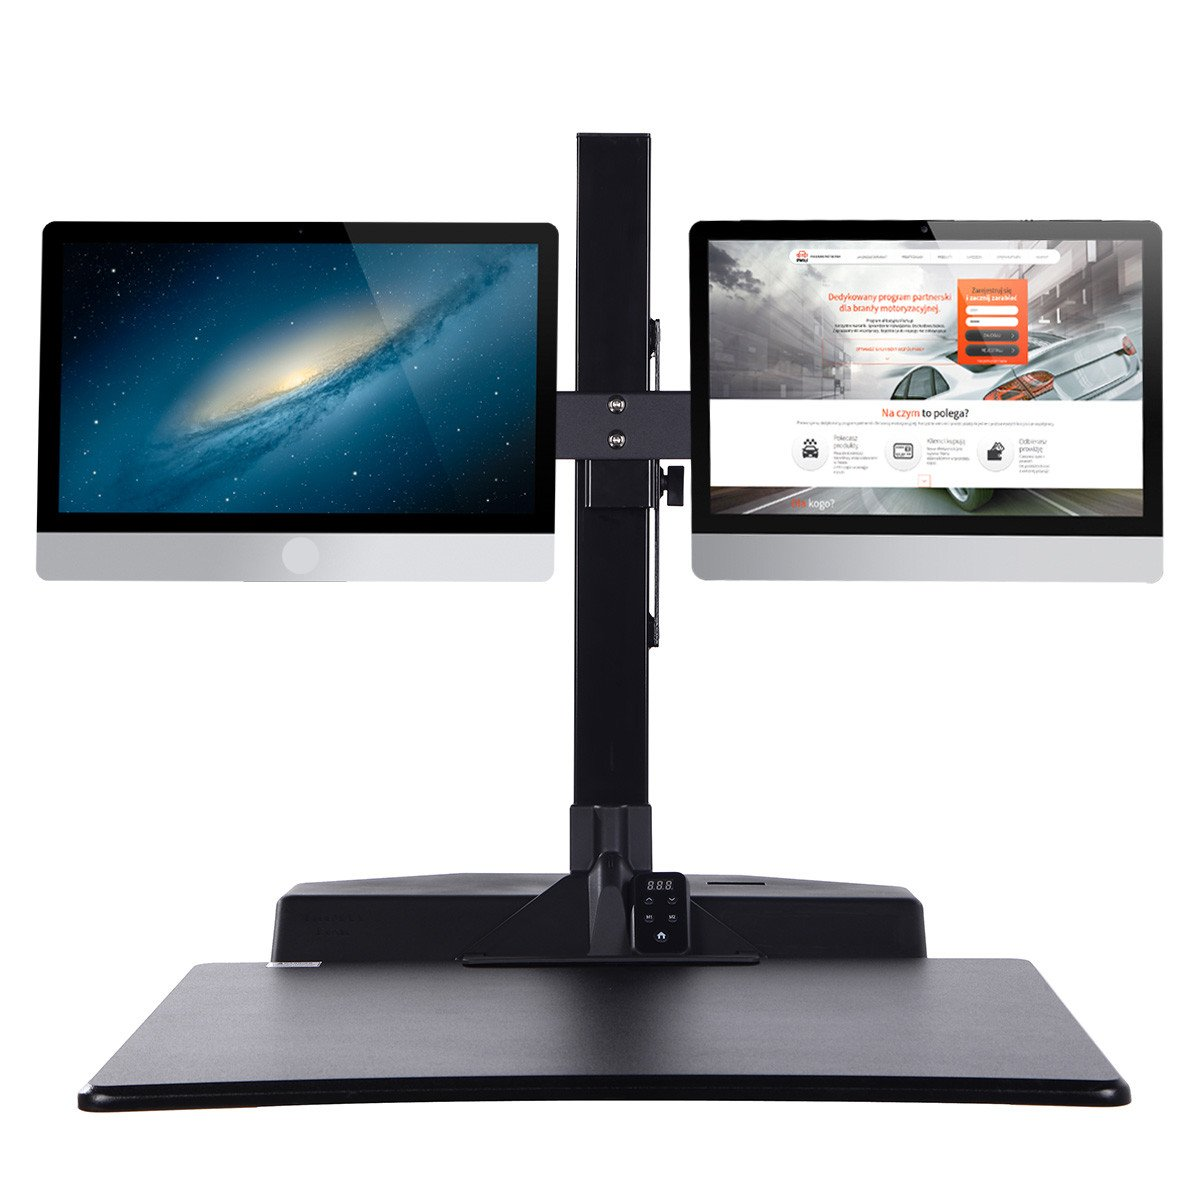 Standing Desk Riser, Freemaxdesk Electric Power Remote Control Height Adjustable Sit to Stand Desk Converter with Monitor Vesa Mount ,Worksuface(26''x21'') by freemaxdesk (Image #5)